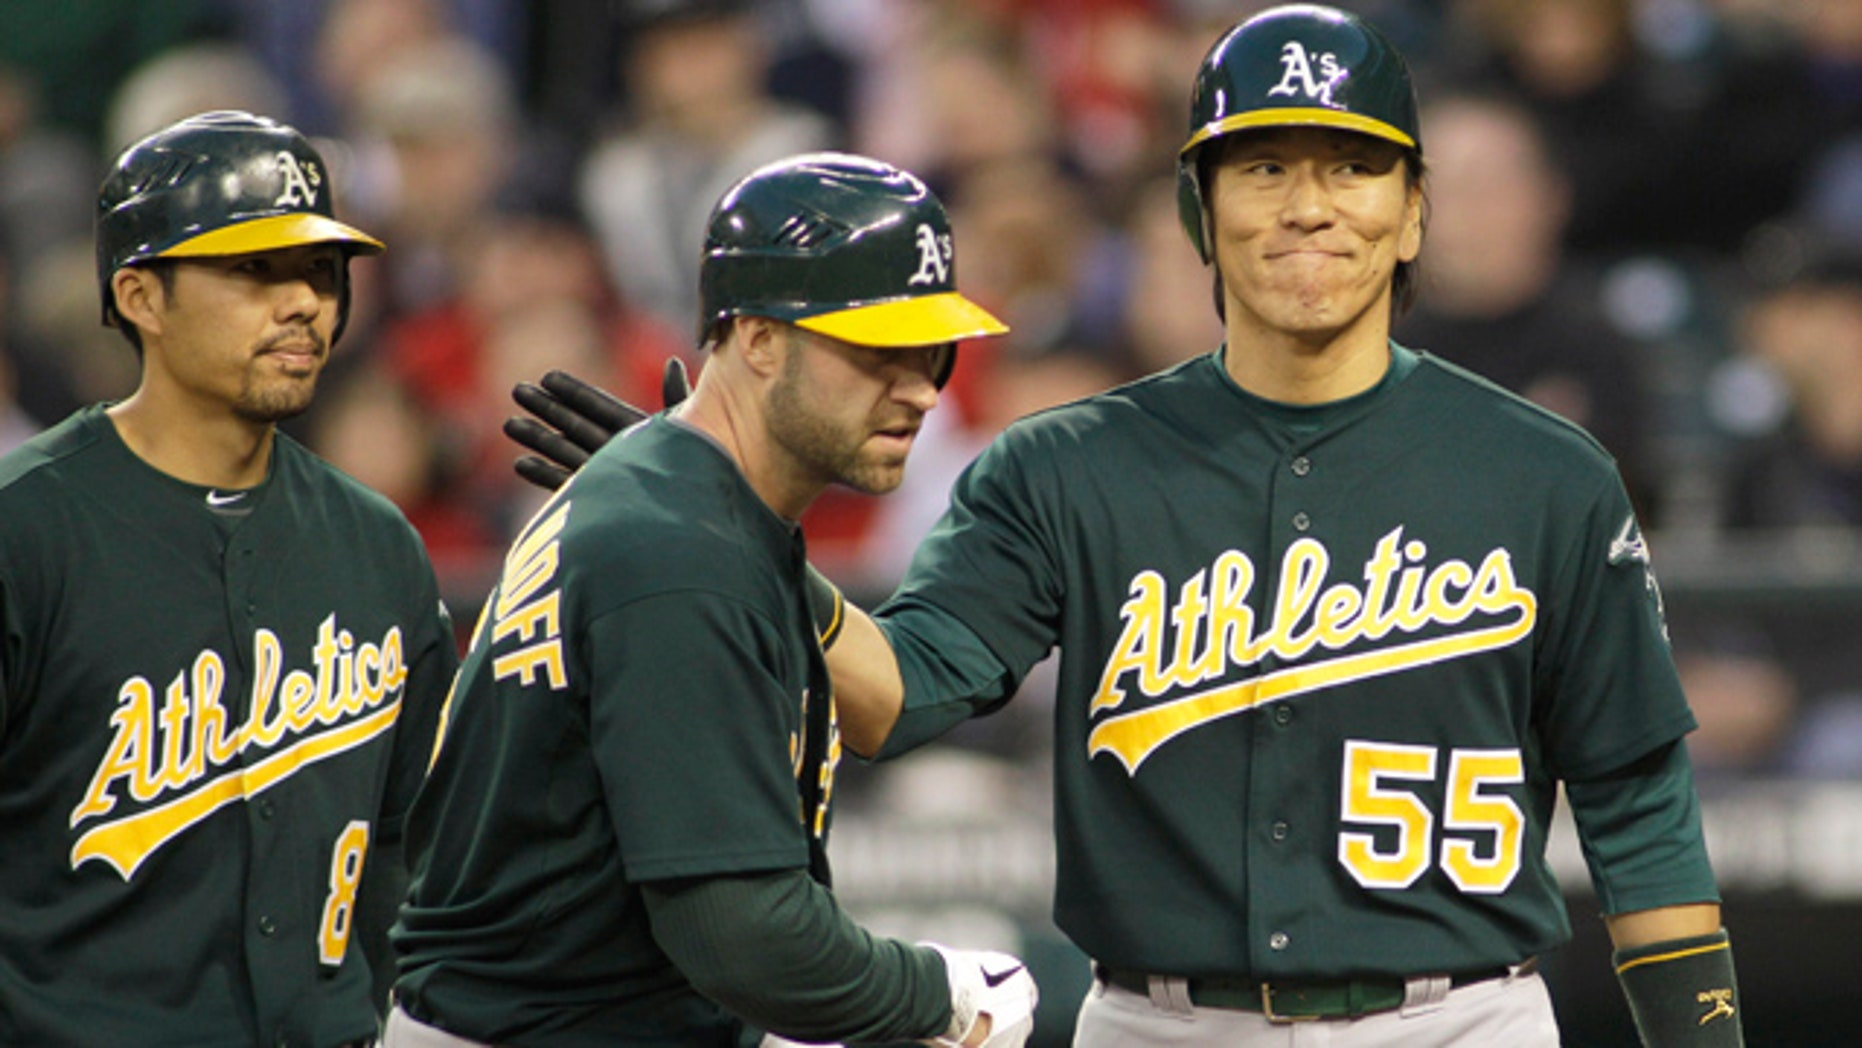 April 23, 2011: Oakland Athletics' Kevin Kouzmanoff, center, is greeted by Hideki Matsui, right, after Matsui and Kurt Suzuki, left, scored when Kouzmanoff hit a three-run home run against the Seattle Mariners in the sixth inning of a baseball game.